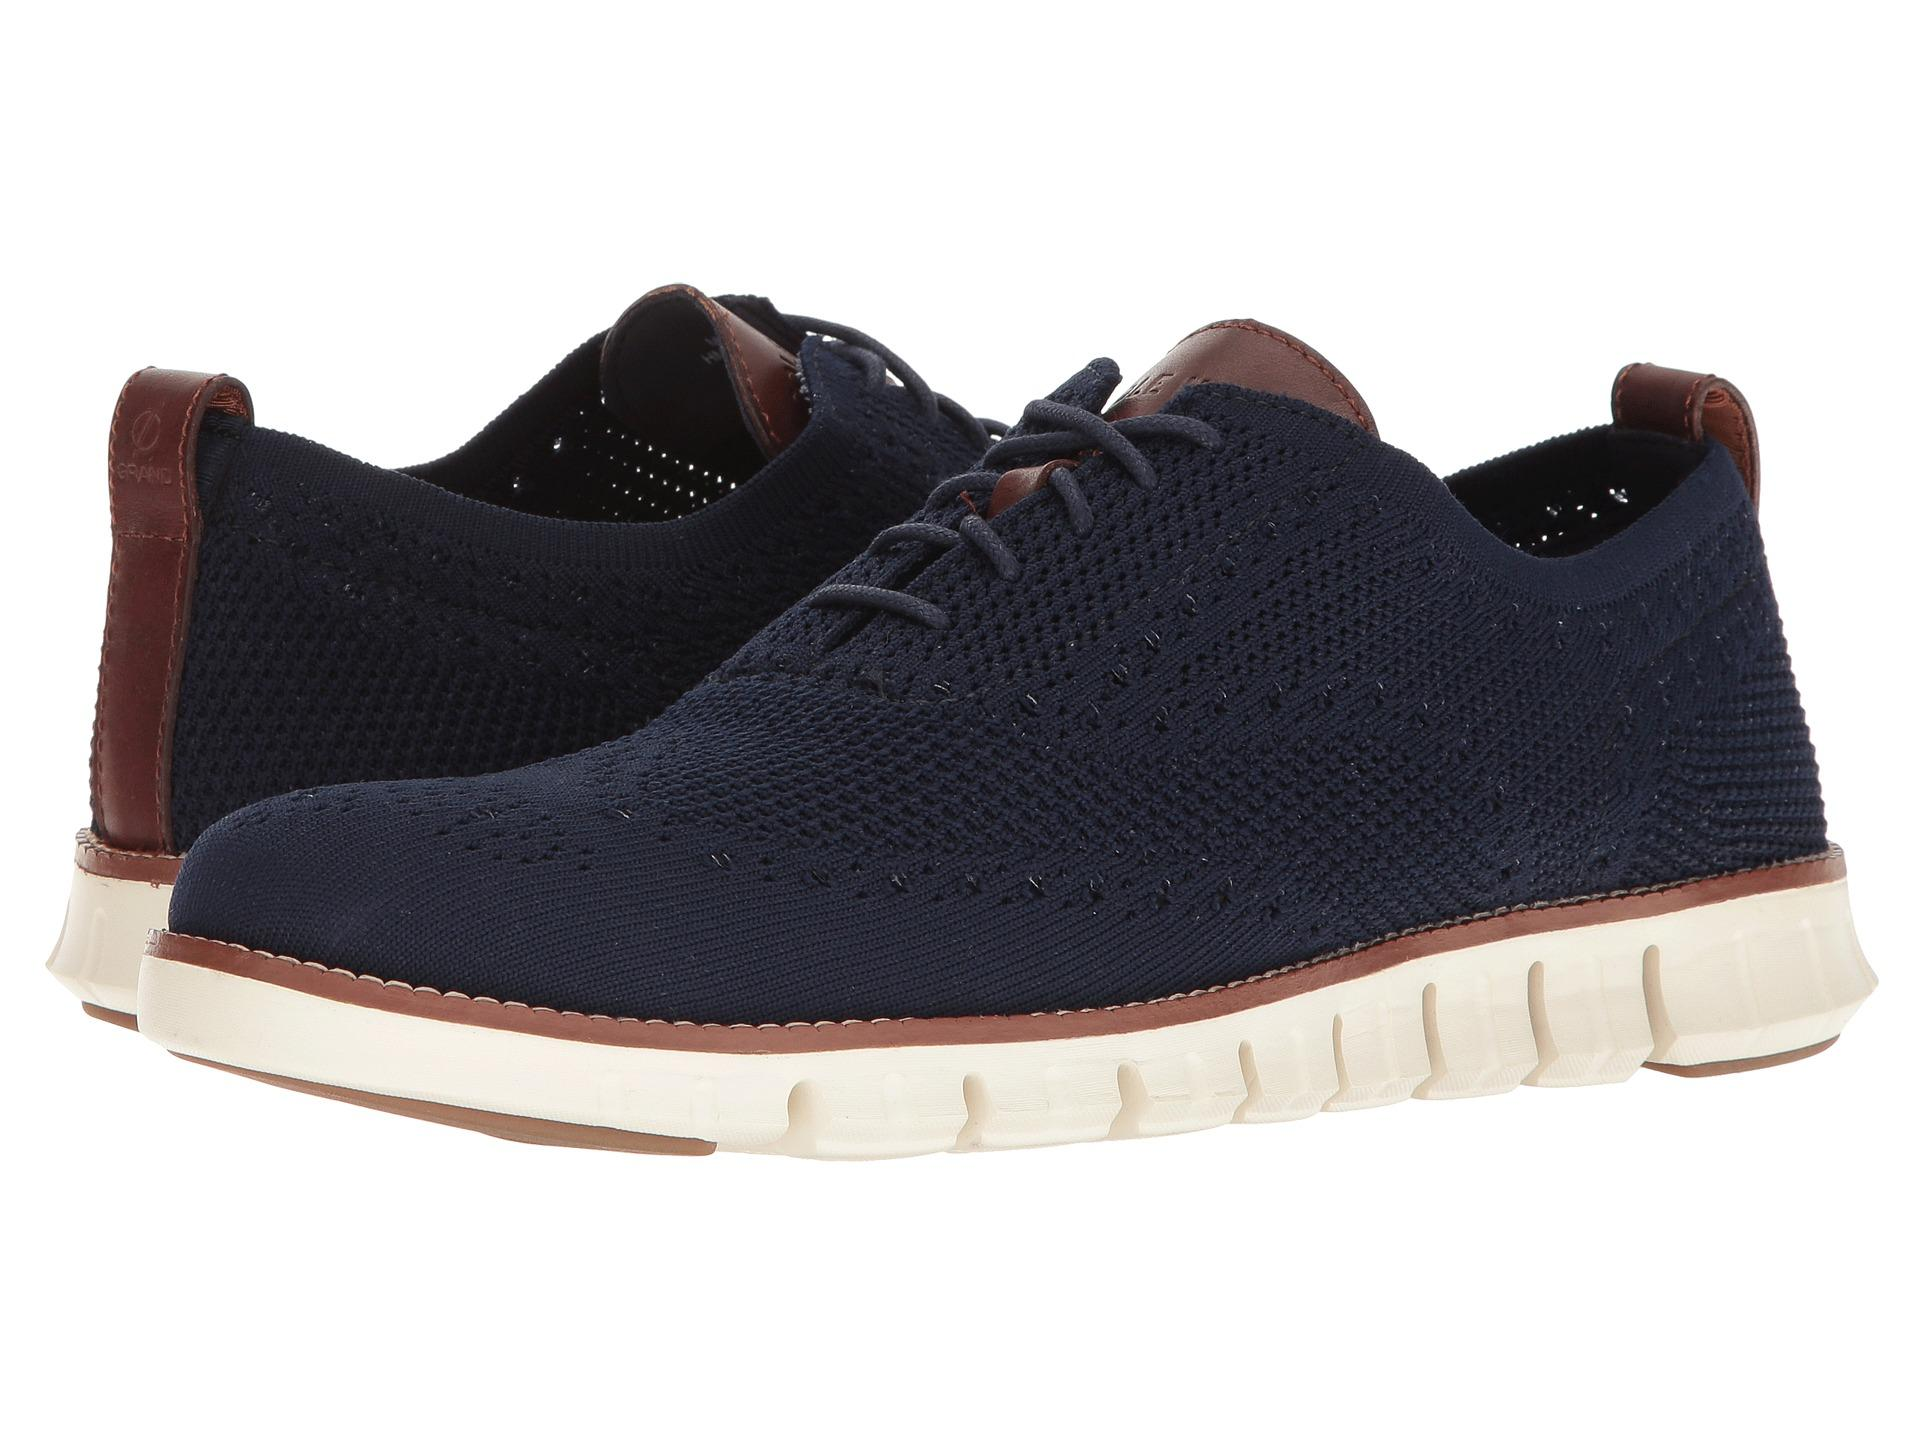 Zappos Cole Haan Womens Shoes